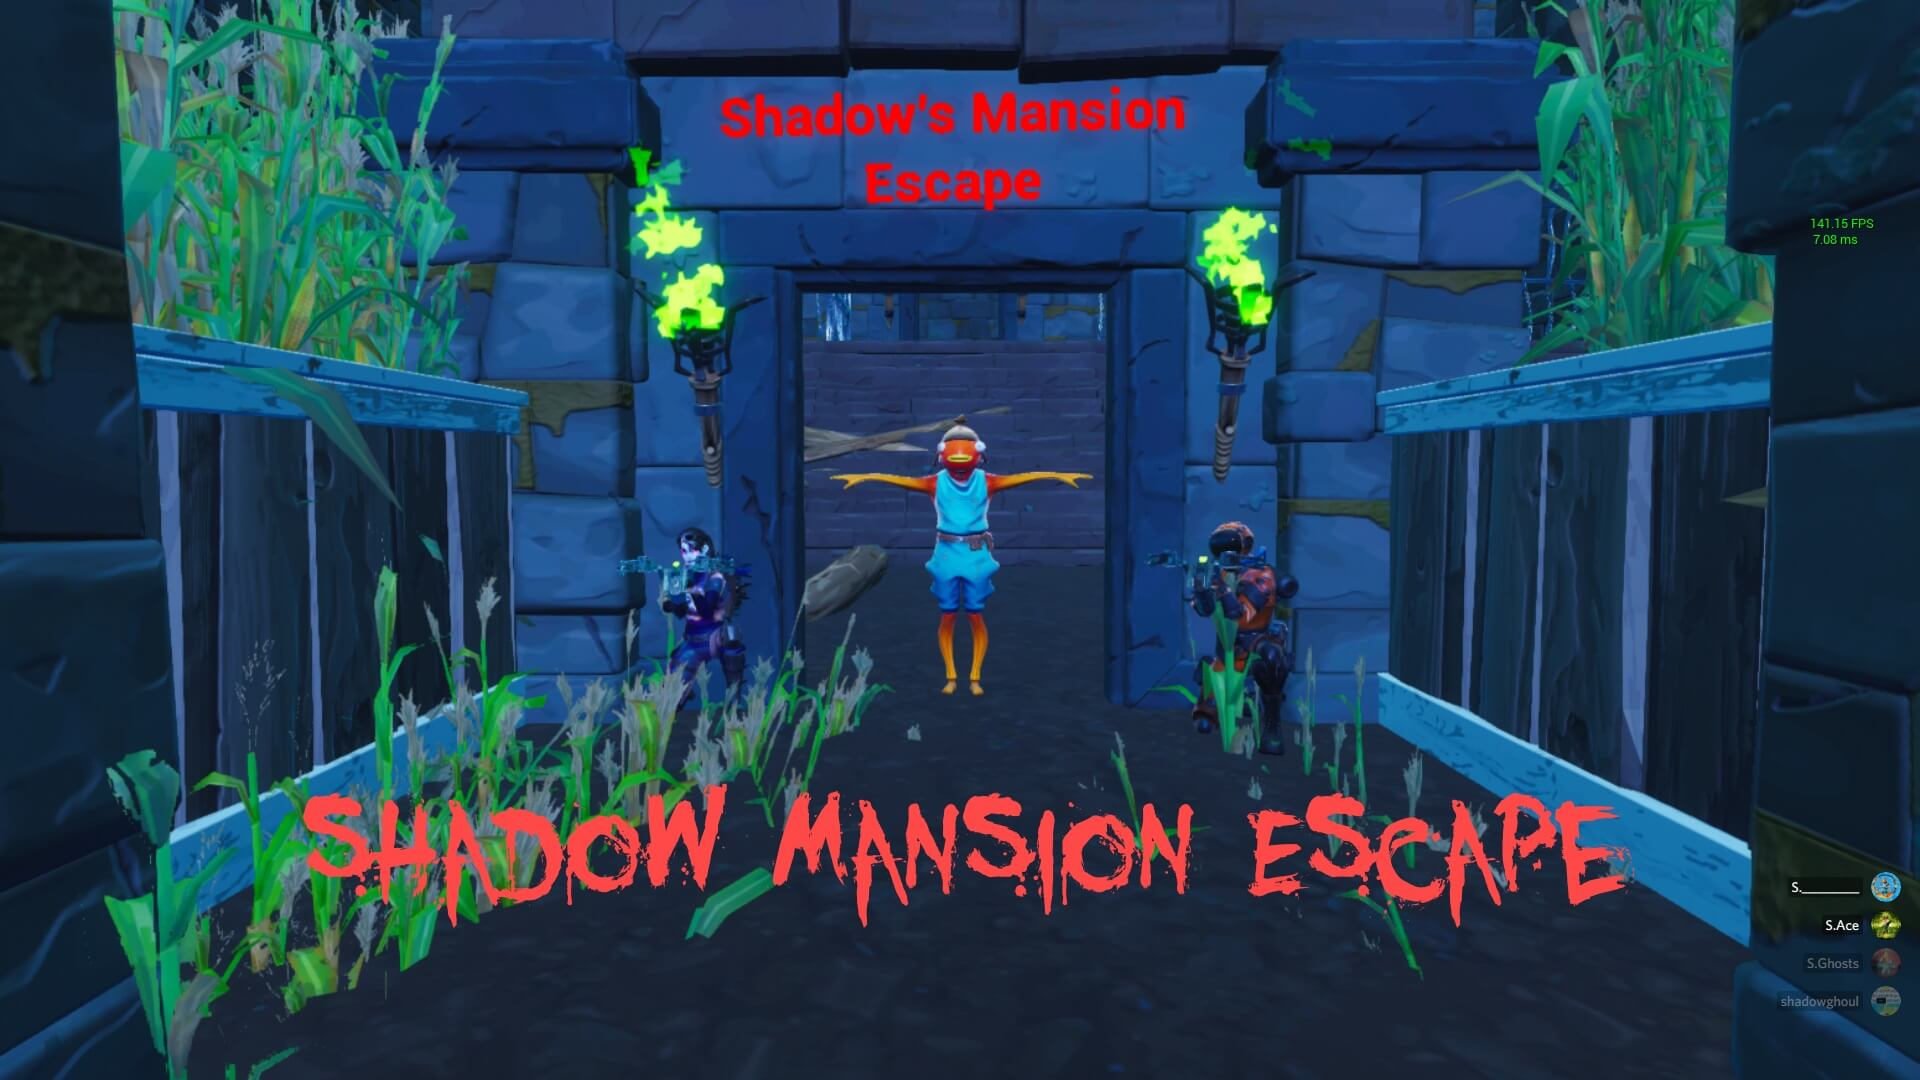 SHADOW MANSION ESCAPE